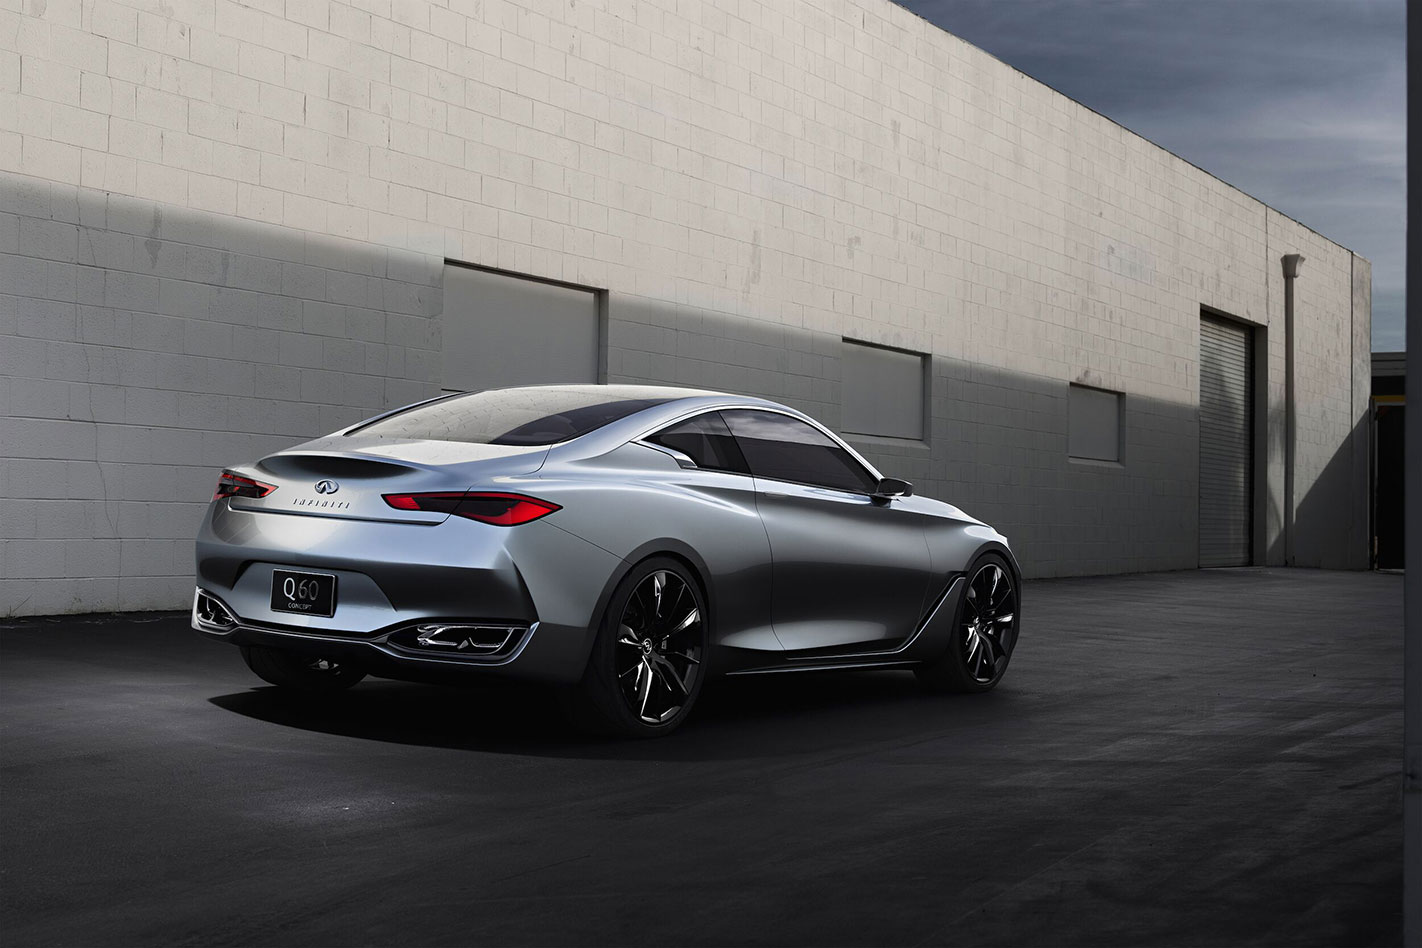 Twin-turbo Infiniti Q60 Coupe